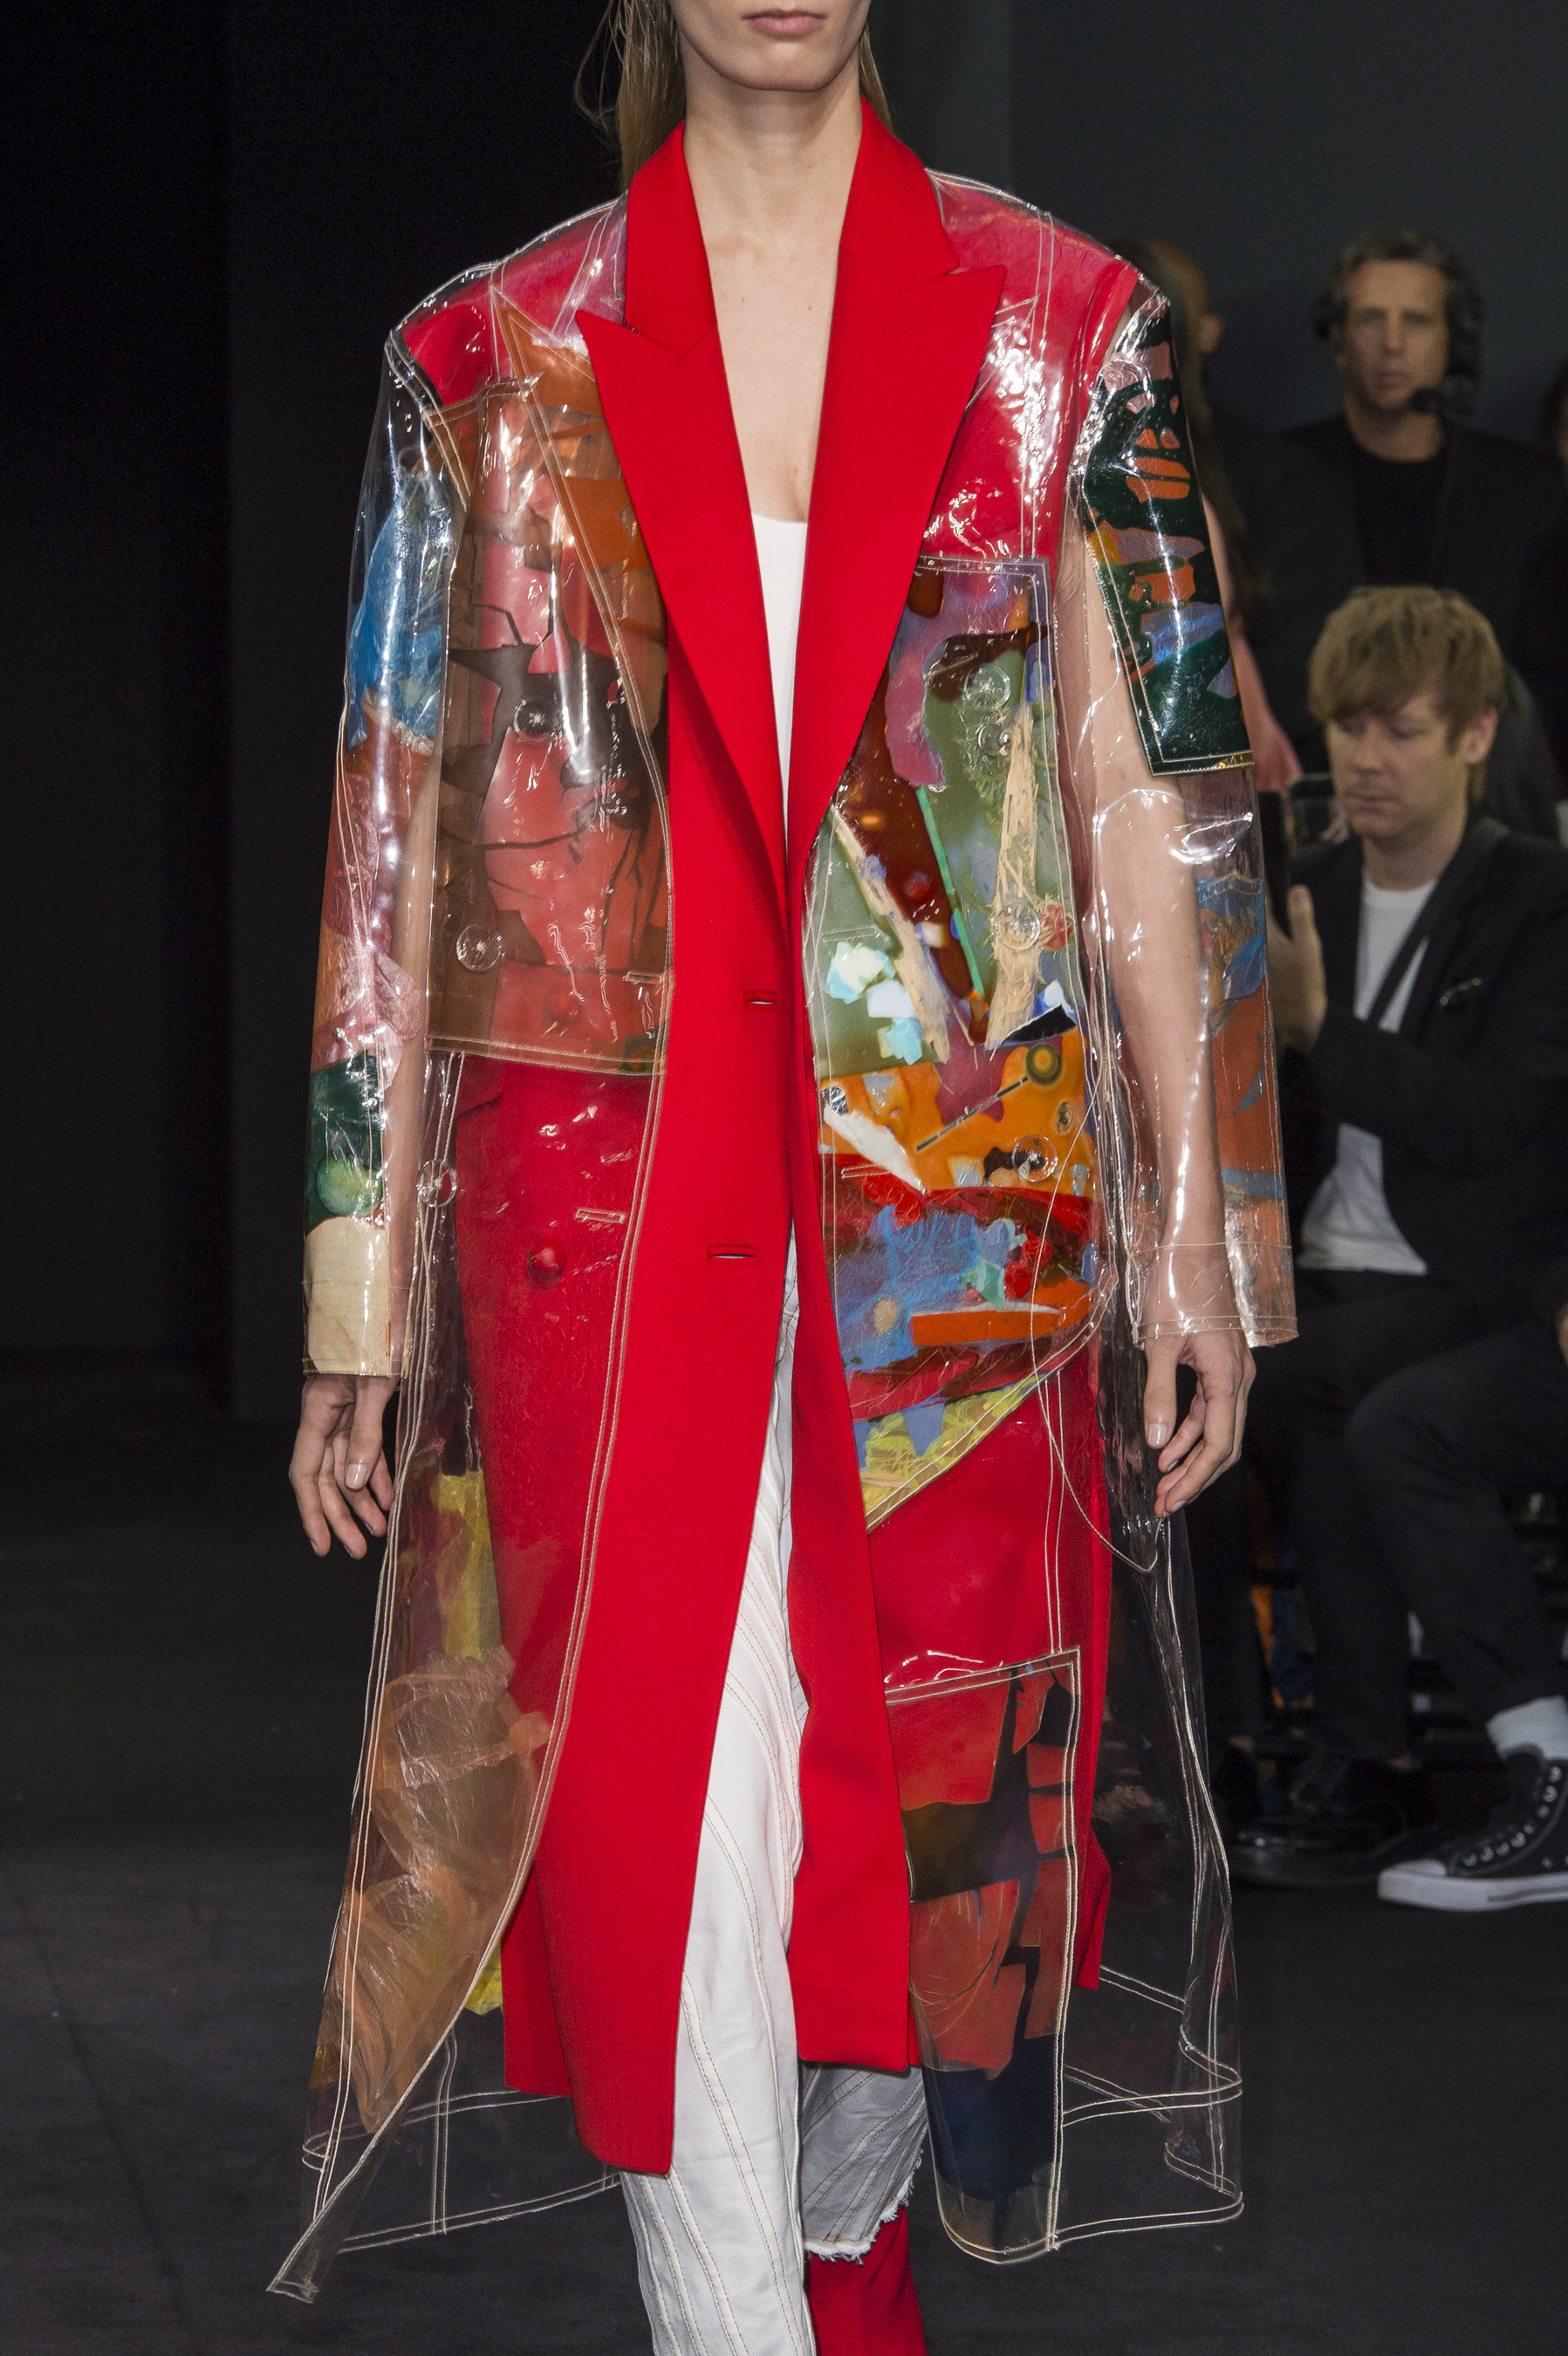 Mugler Details Transparent Patchwork Print Coat Sleeveless Coat in Red High Waisted Spiral Seam Jeans With Raw Bottom Hem Size Zip Boots in Red Suede Spring 19